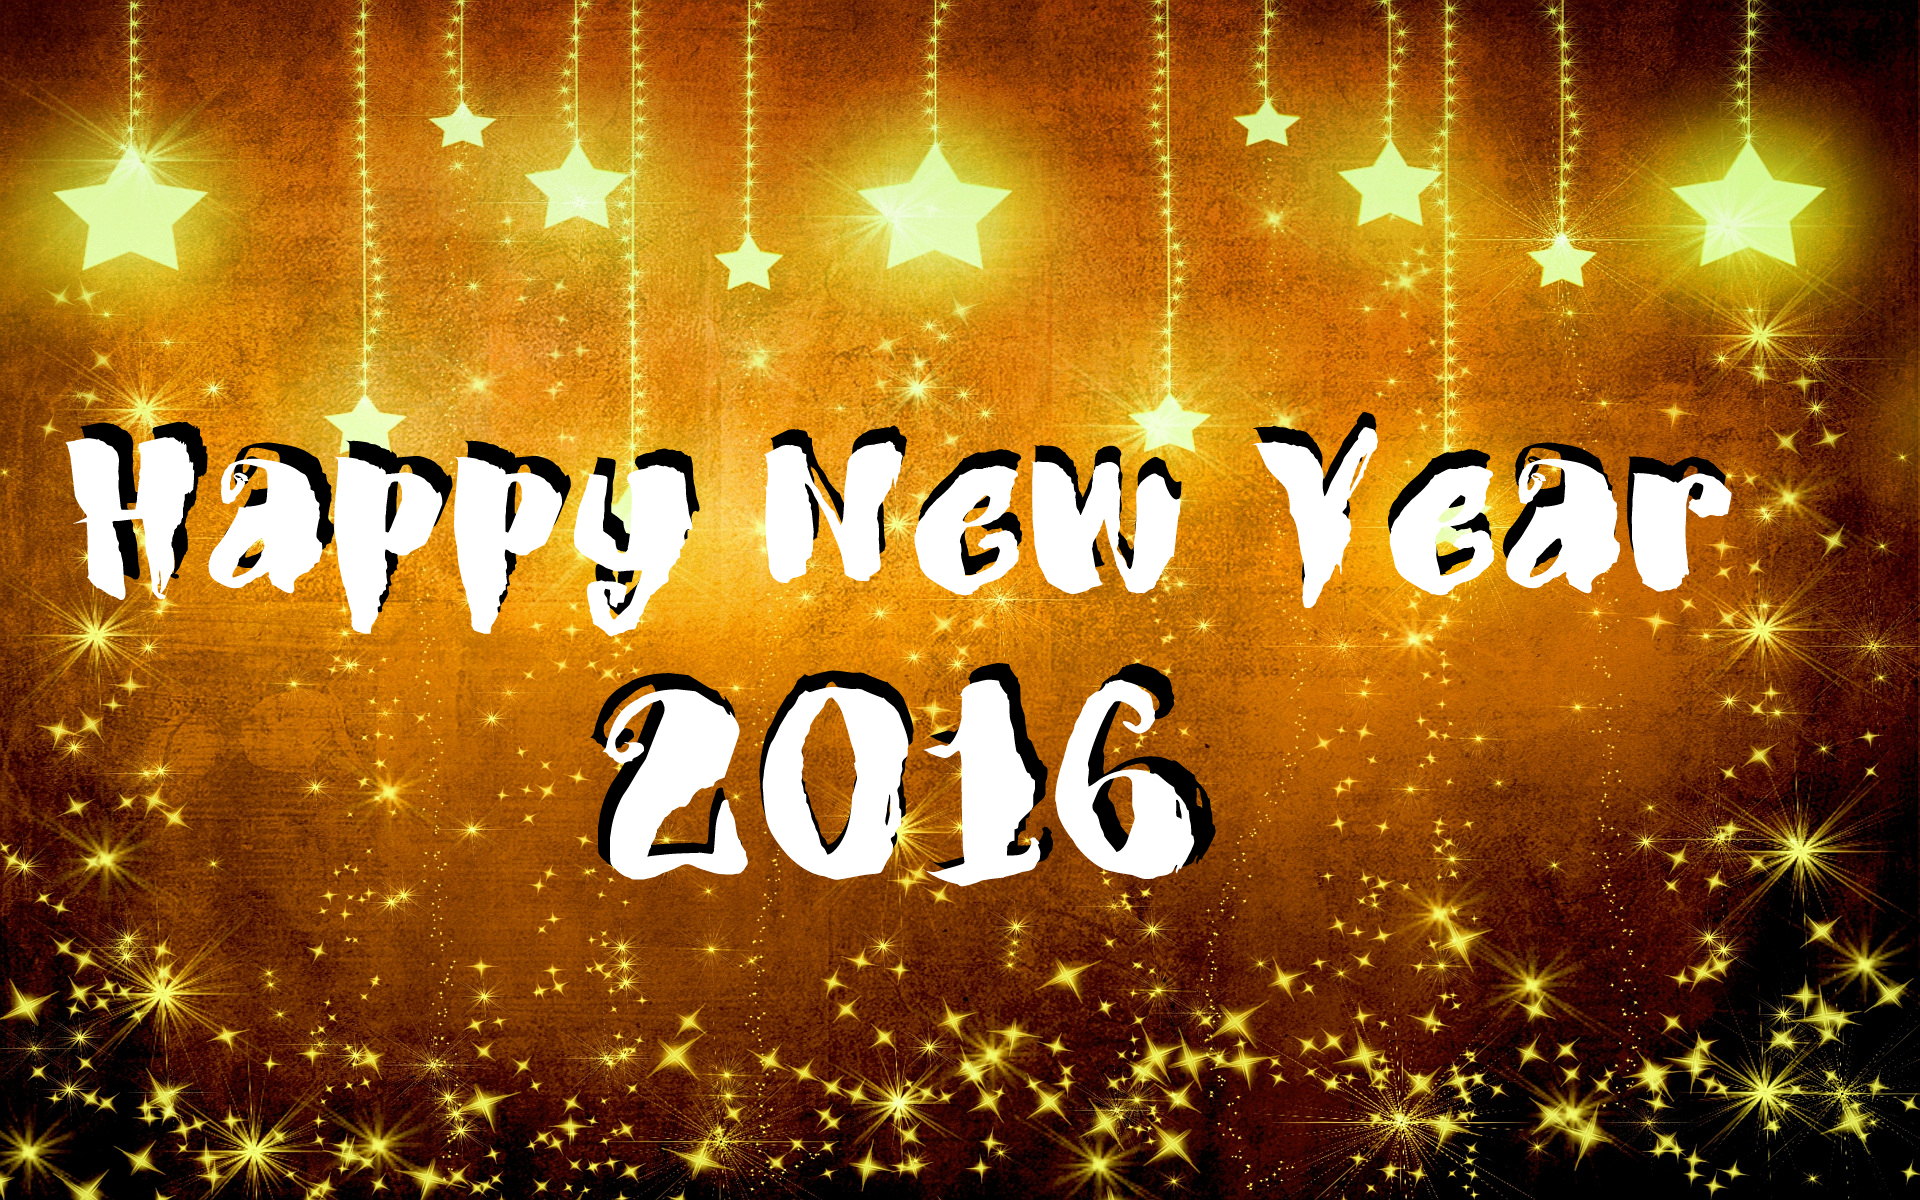 Happy-New-Year-2016-Images-5.jpg